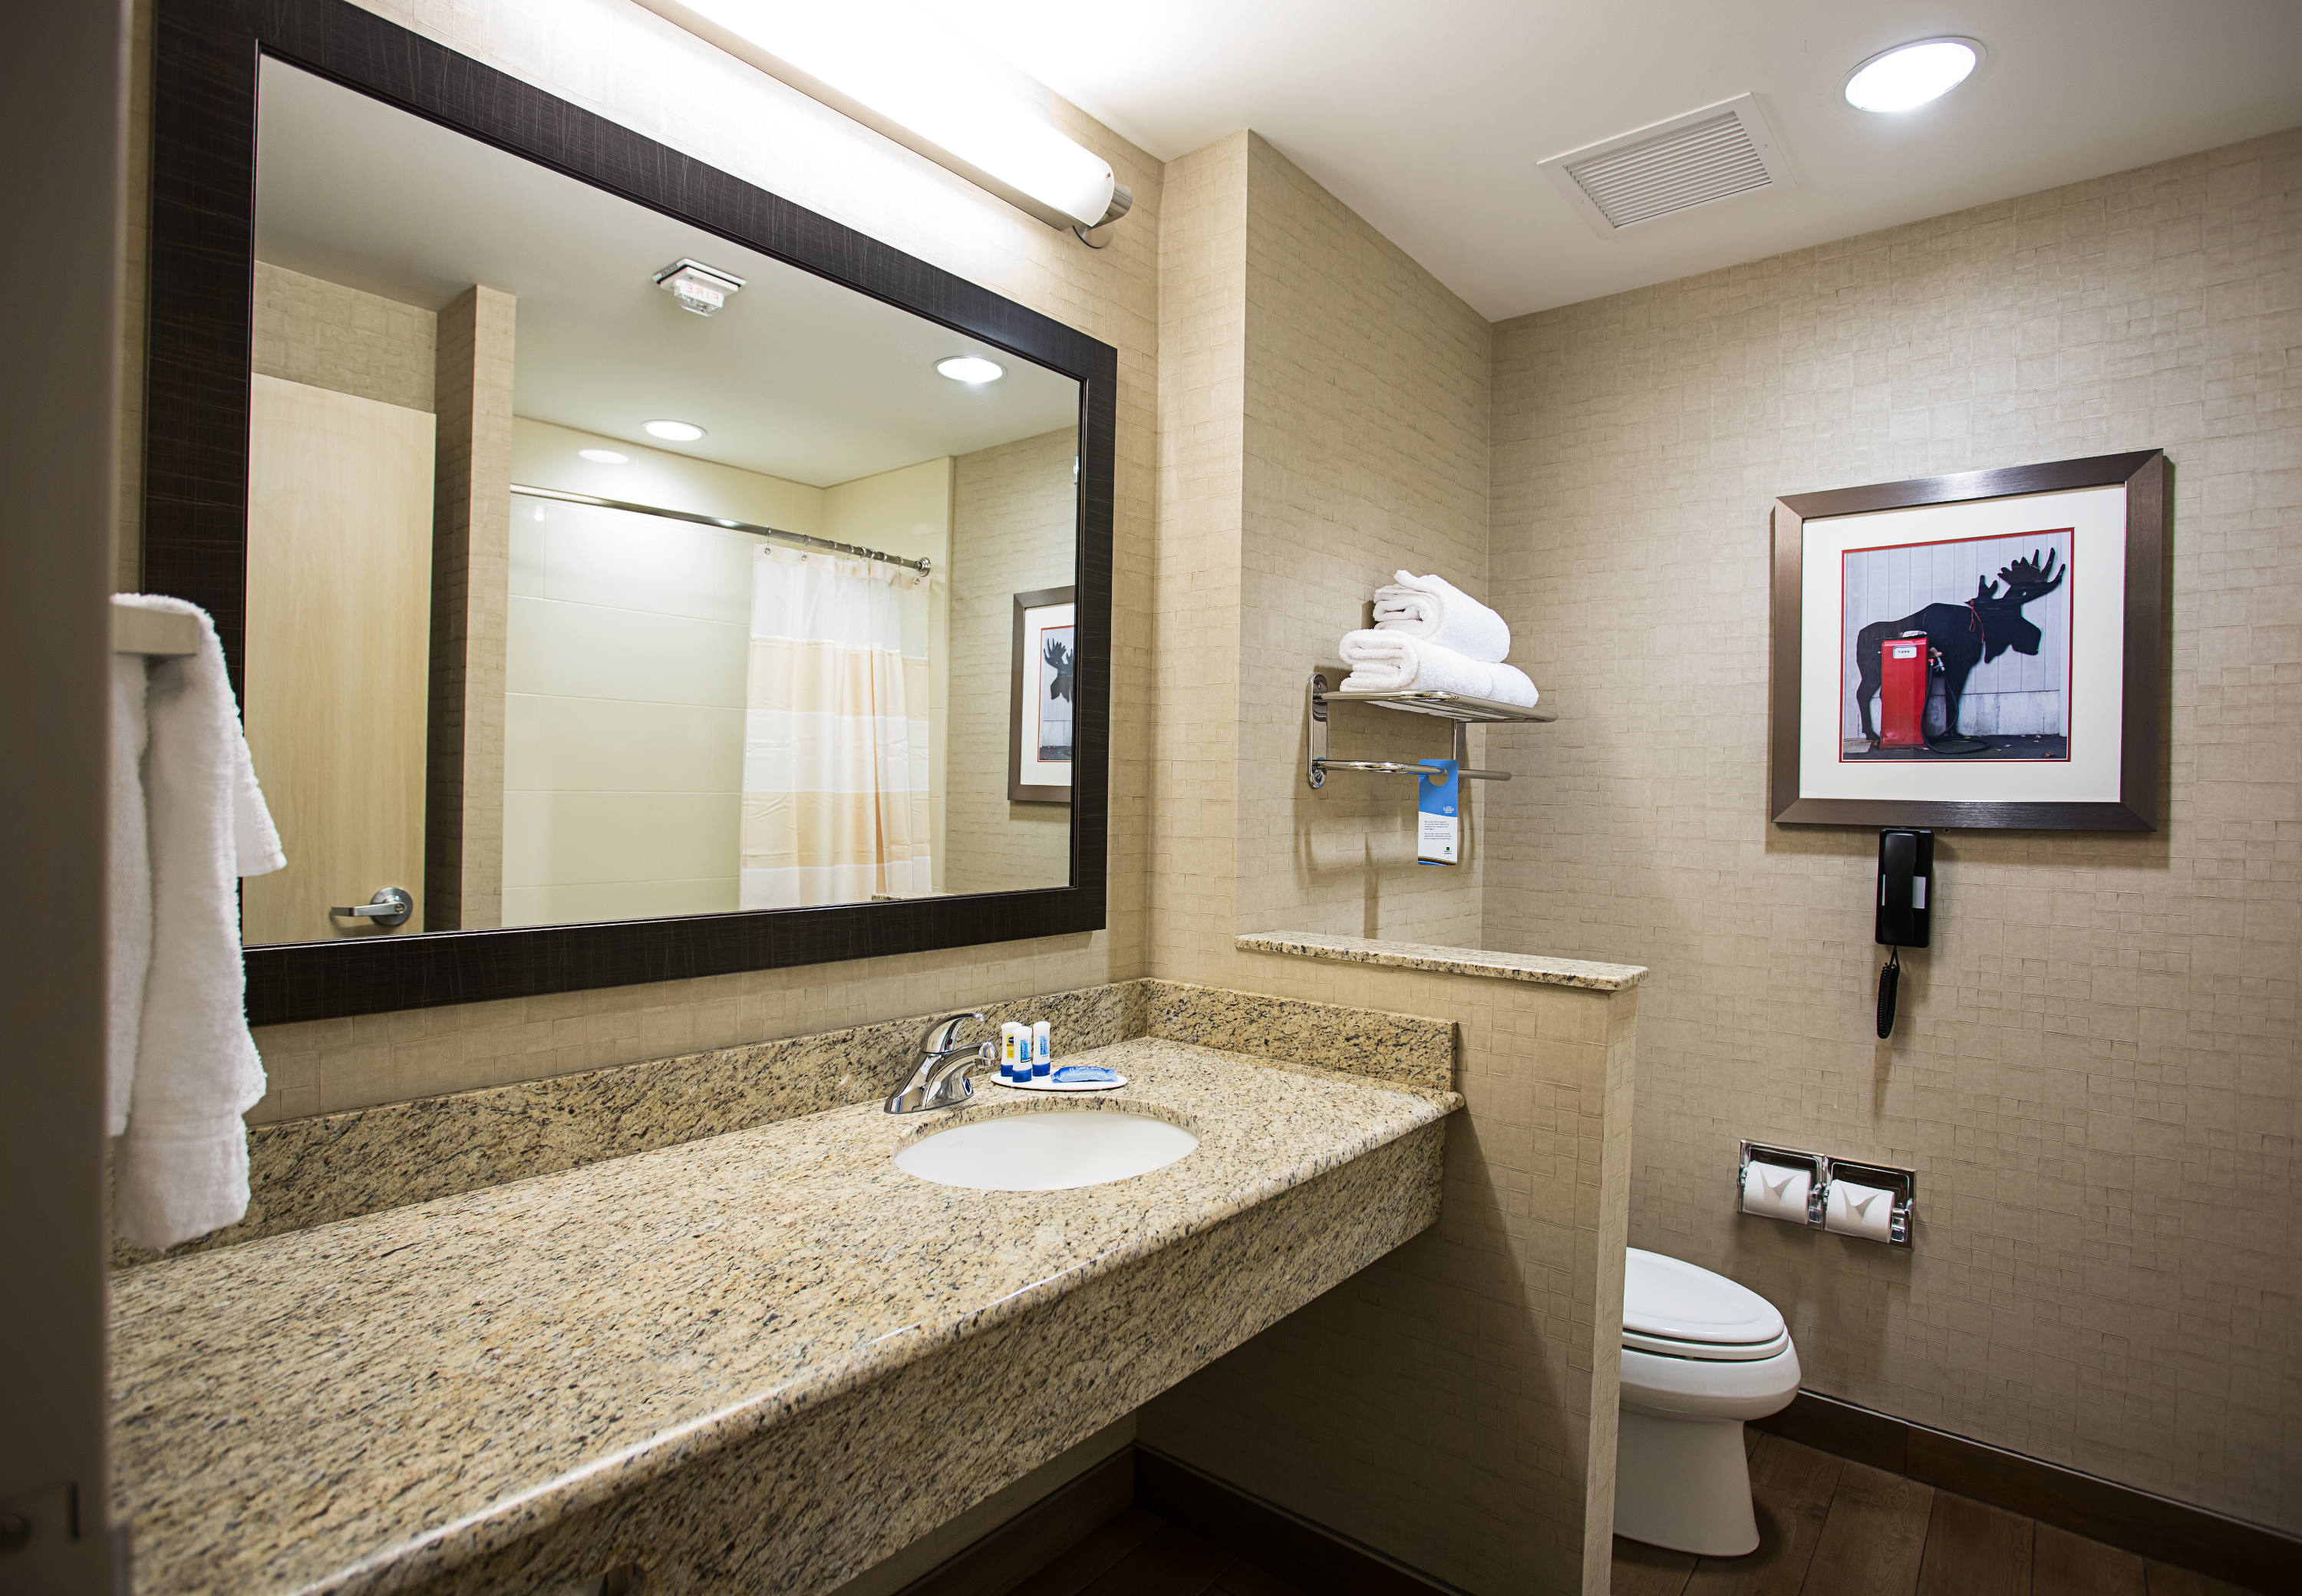 Fairfield Inn & Suites by Marriott Moscow image 10